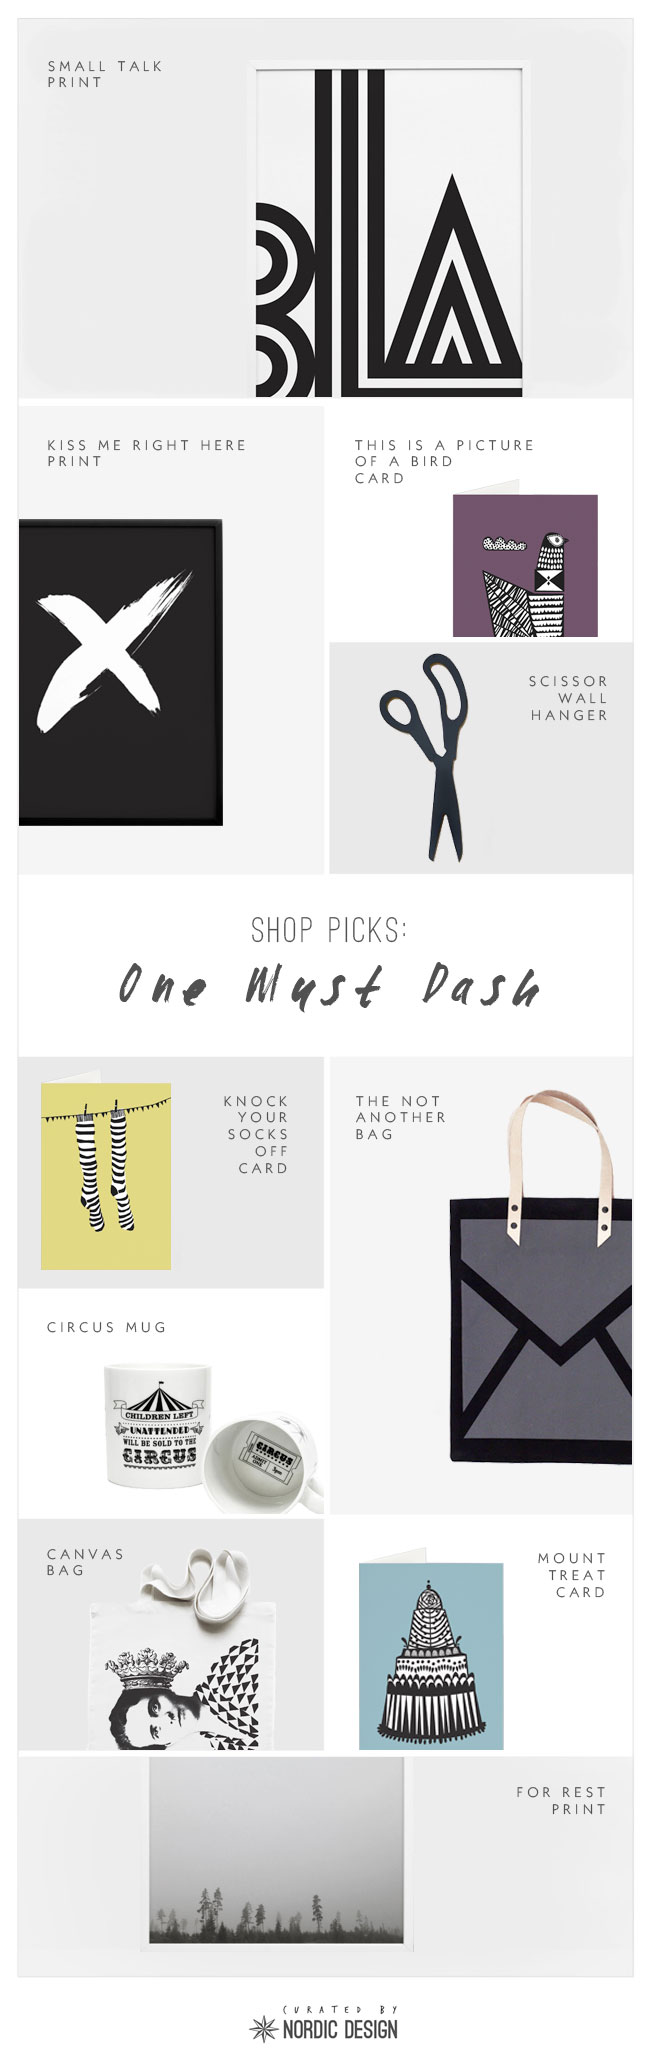 Shop-picks-OneMustDash-by-Nordic-Design